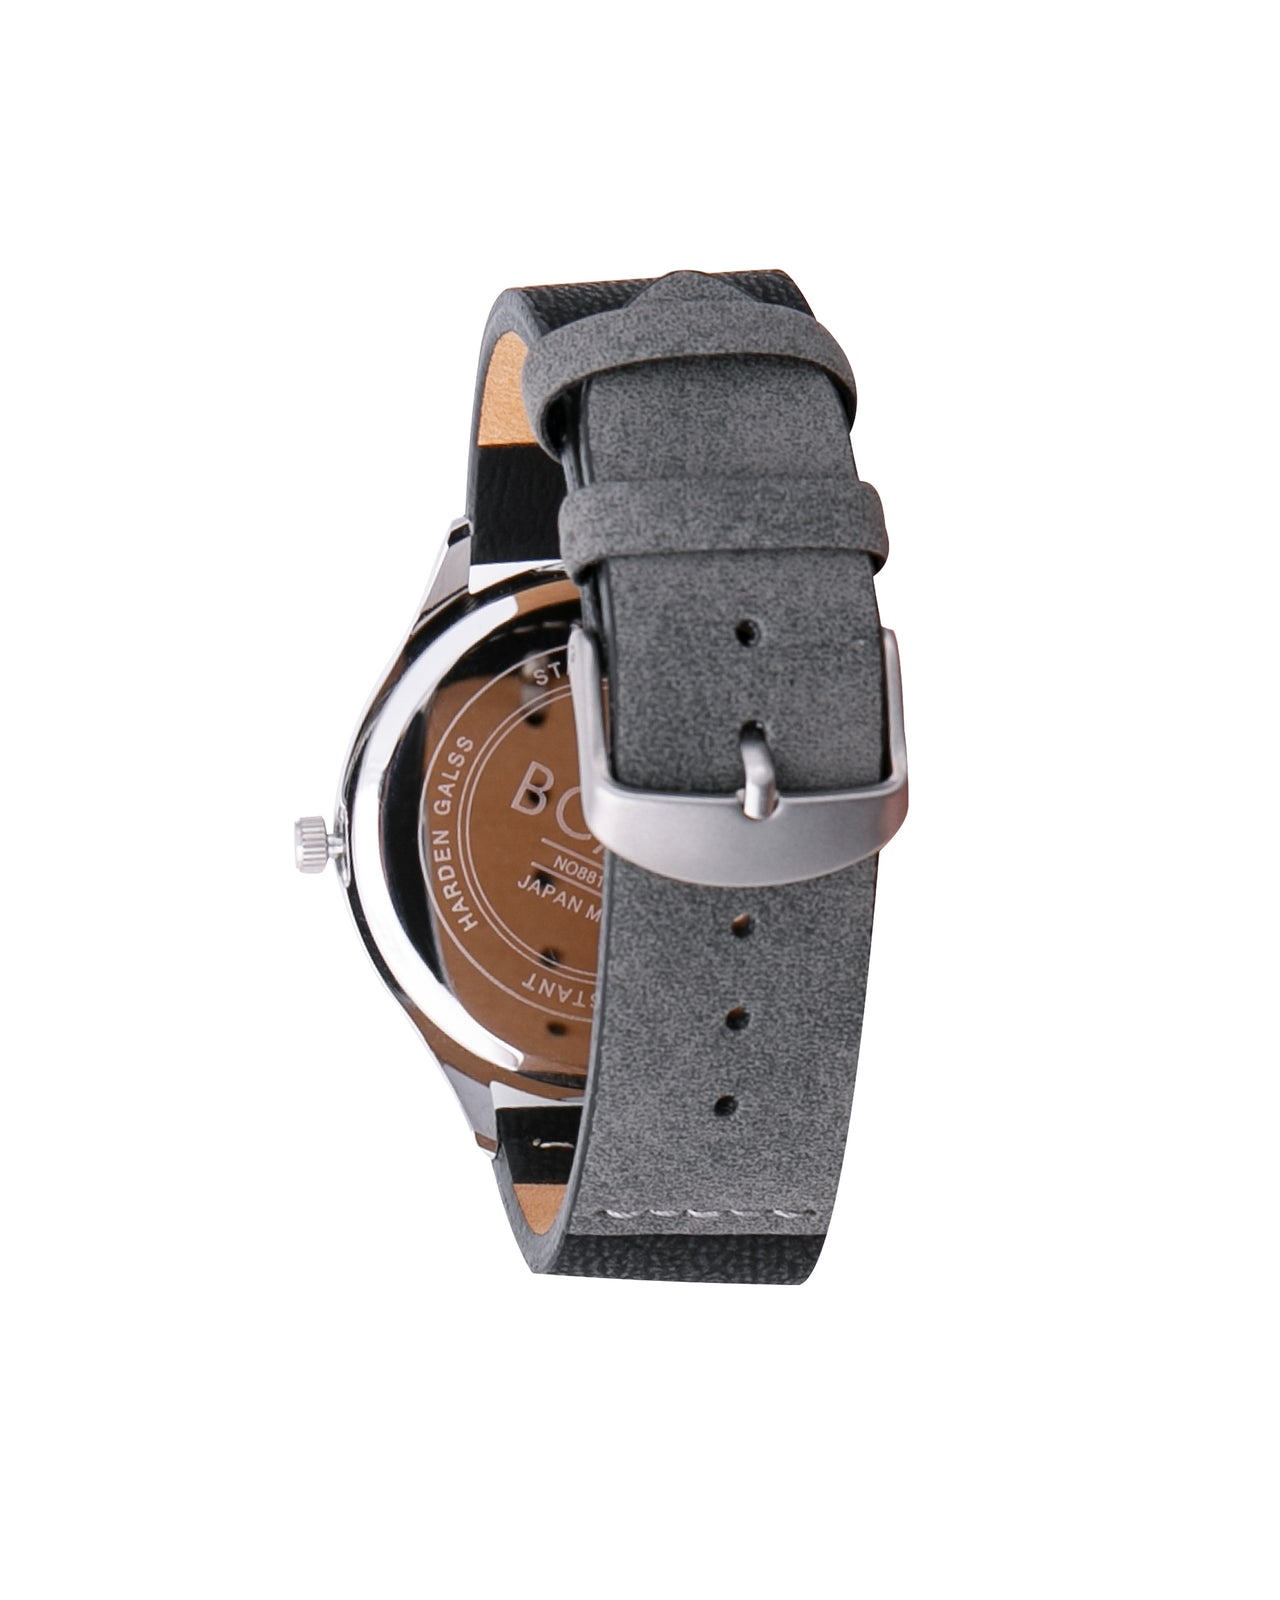 The 0881355 Watch - Color: Black/Grey | Black